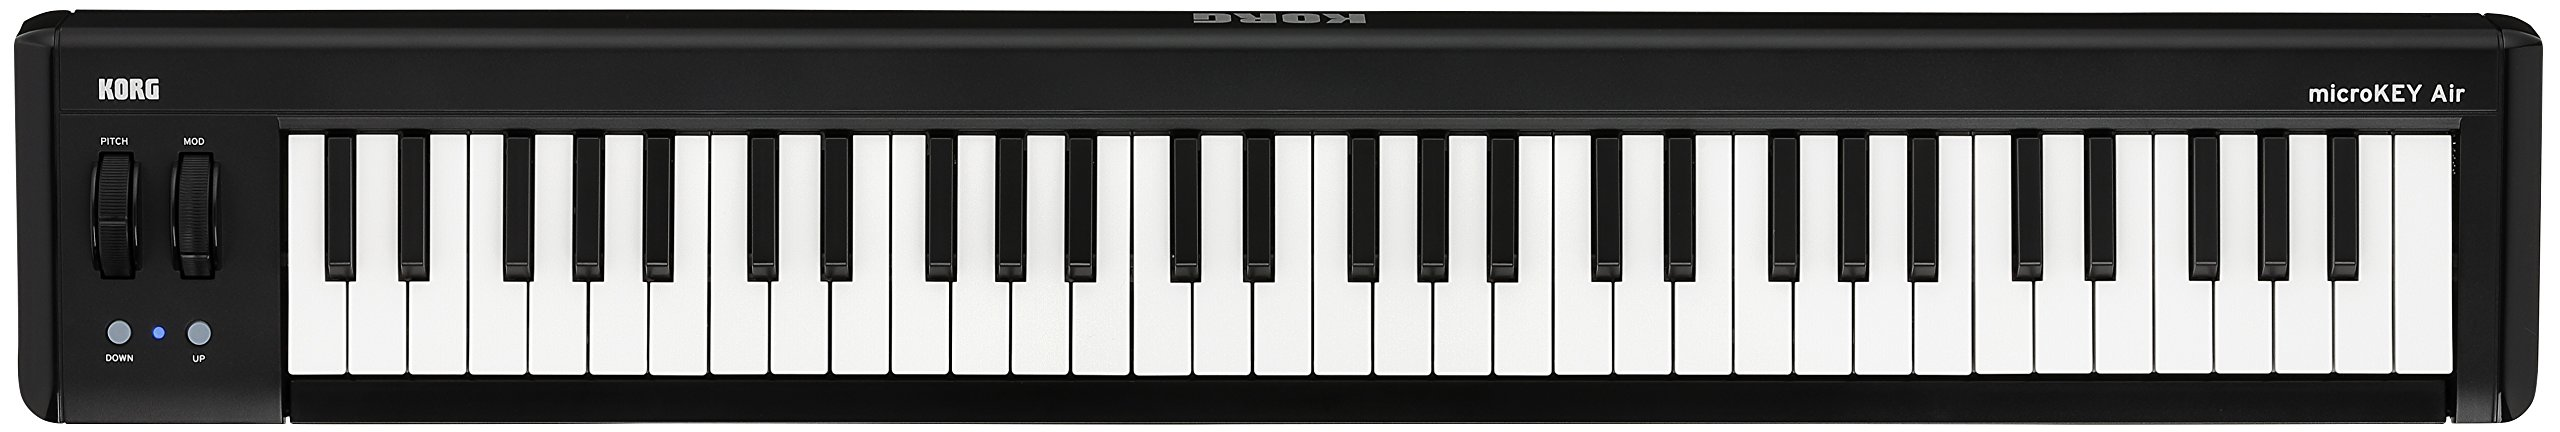 Korg microKEY air 61 - Key Bluetooth and USB MIDI Controller